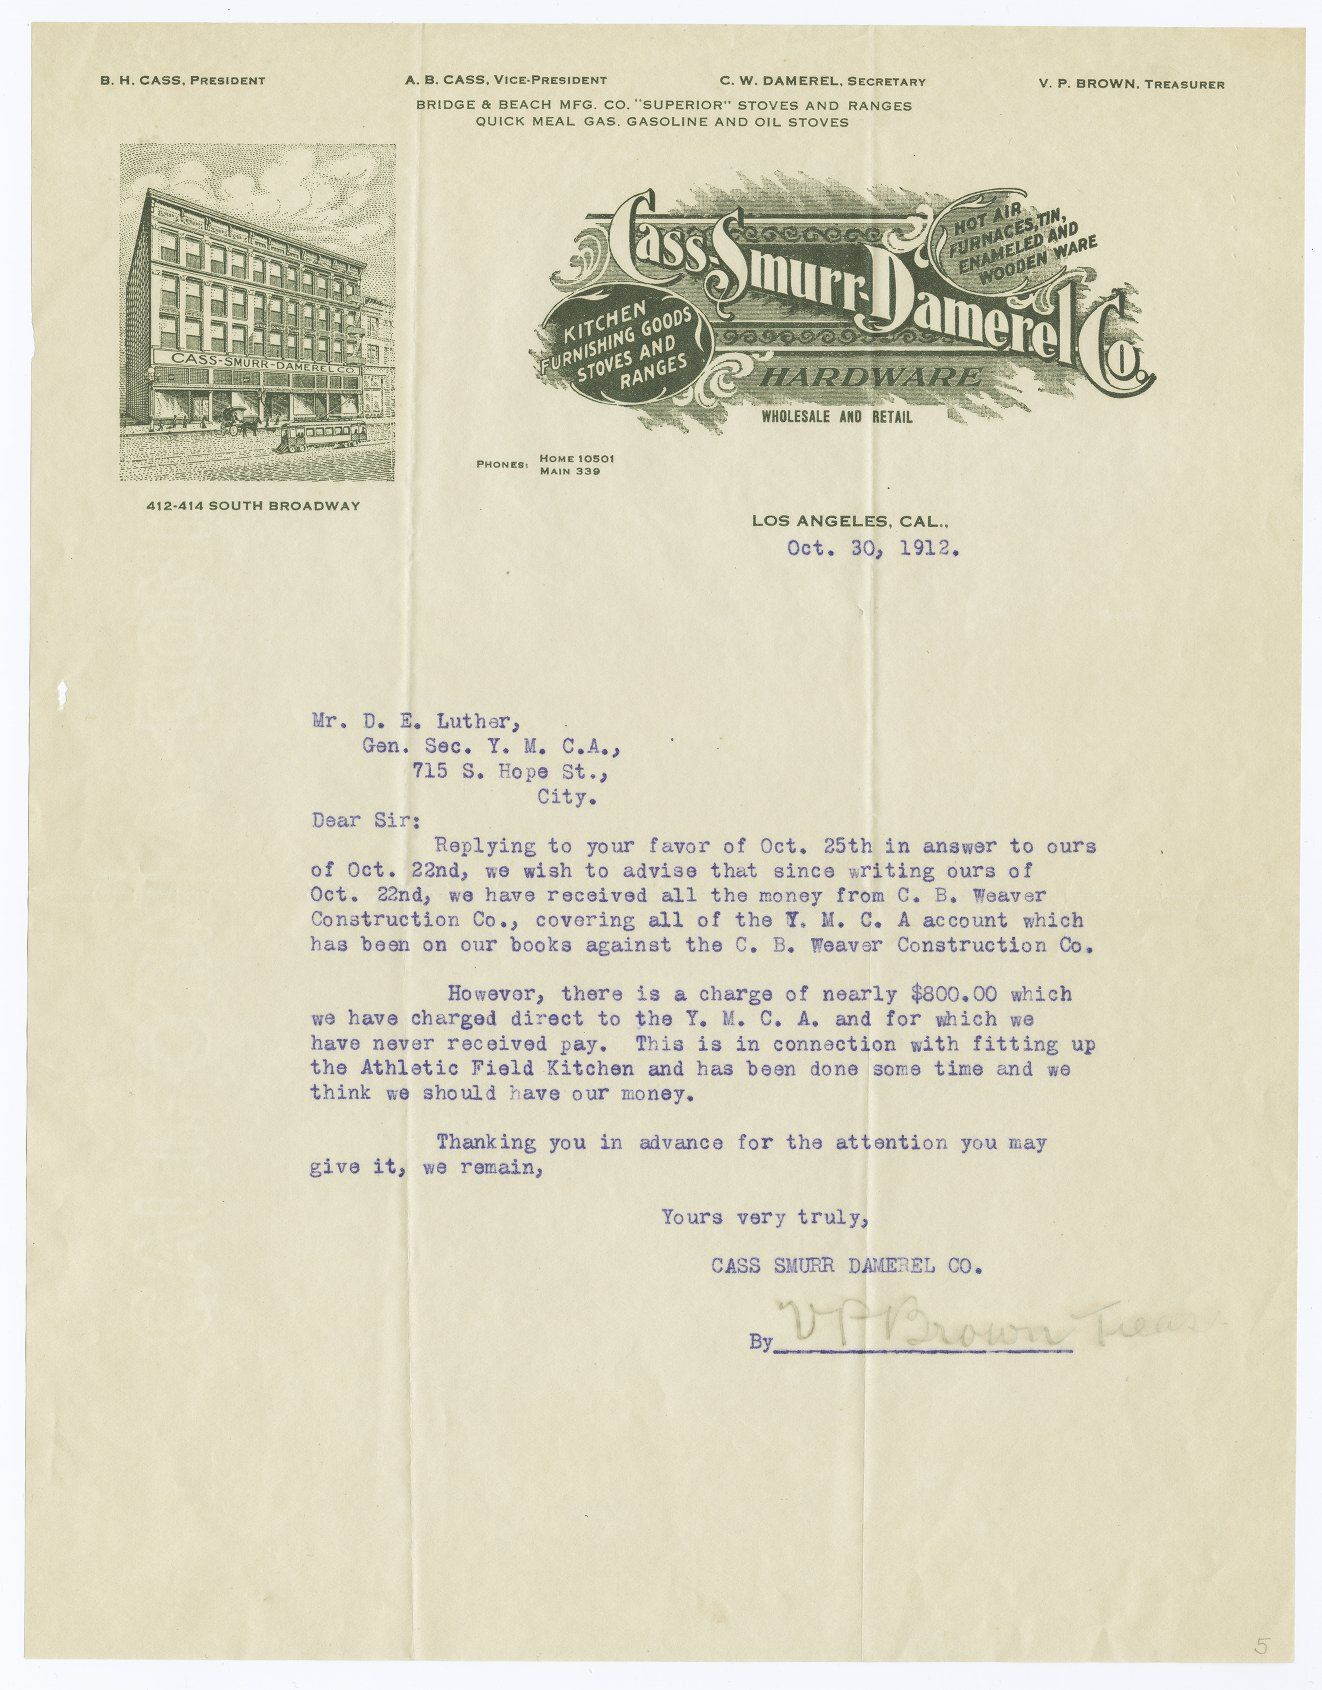 Cass-Smurr-Damerel Co. letterhead